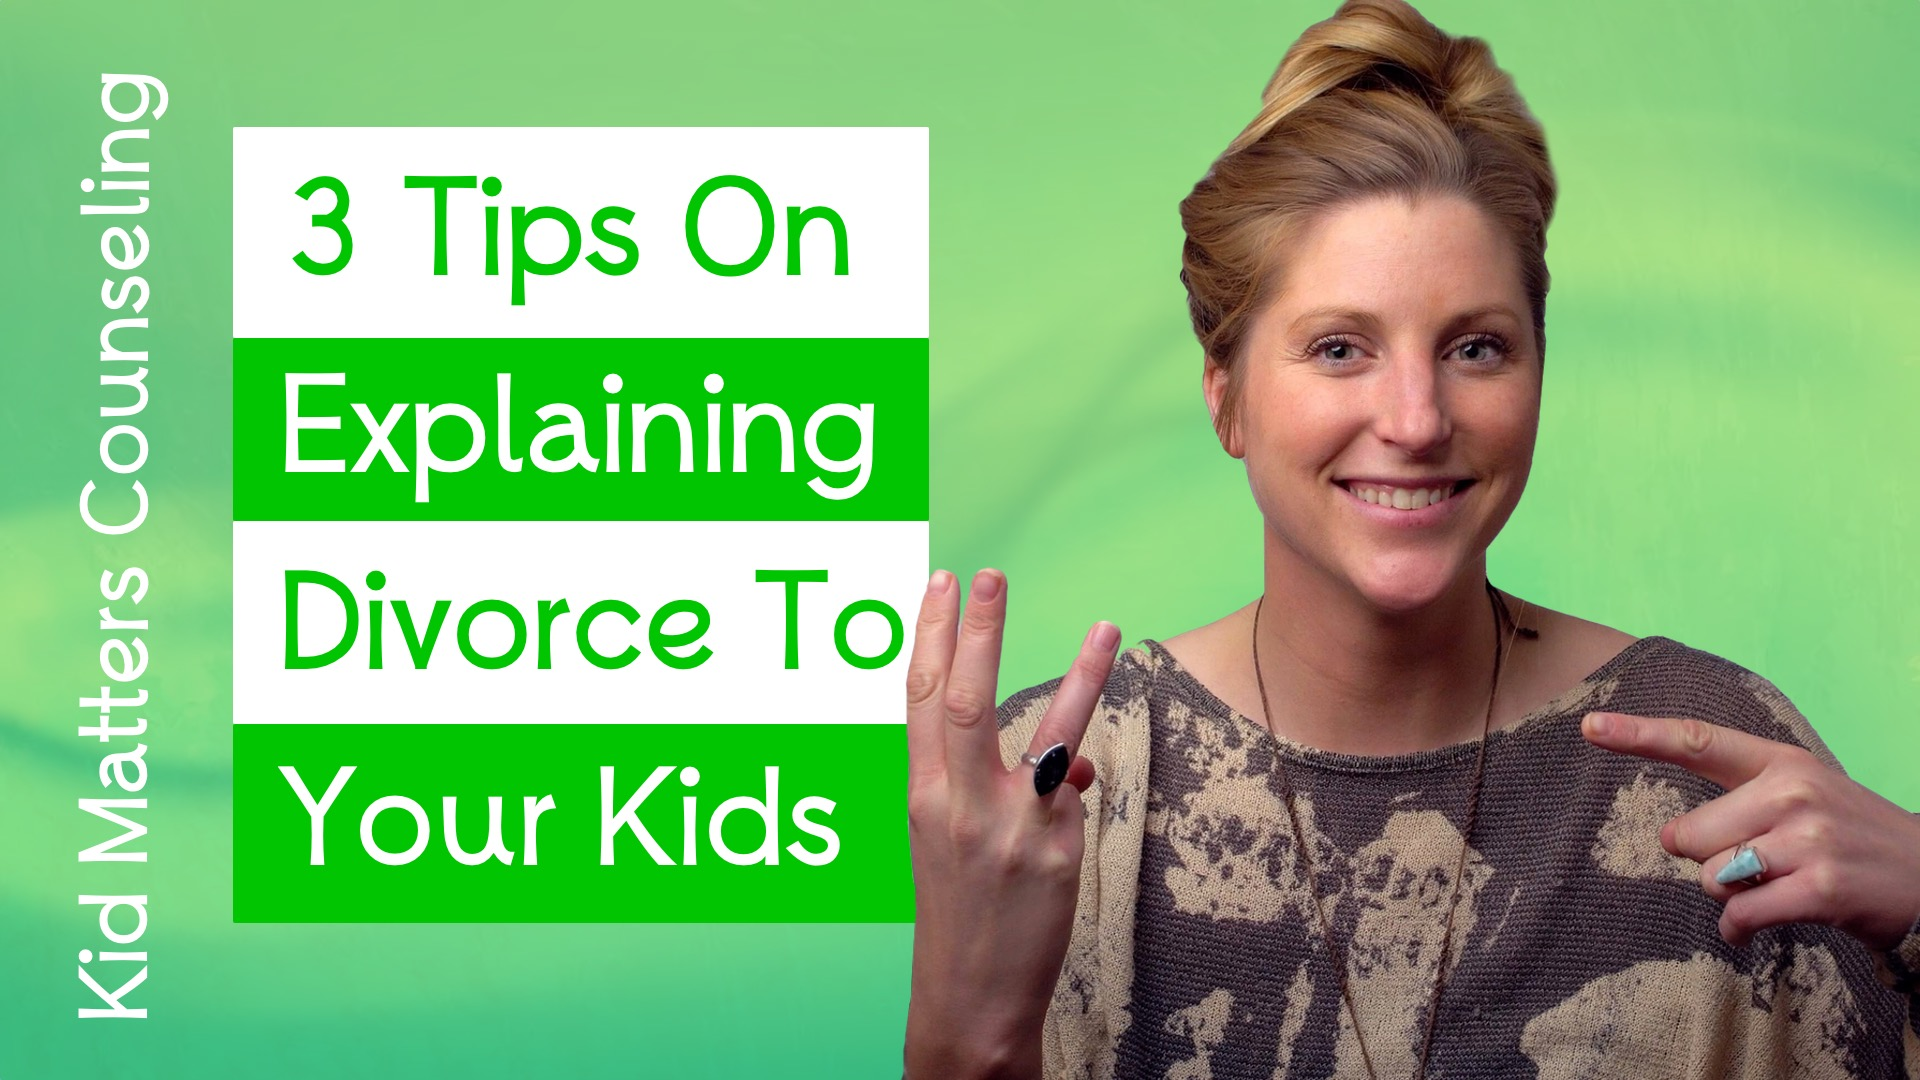 3 Tips on Explaining Divorce to Your Kids